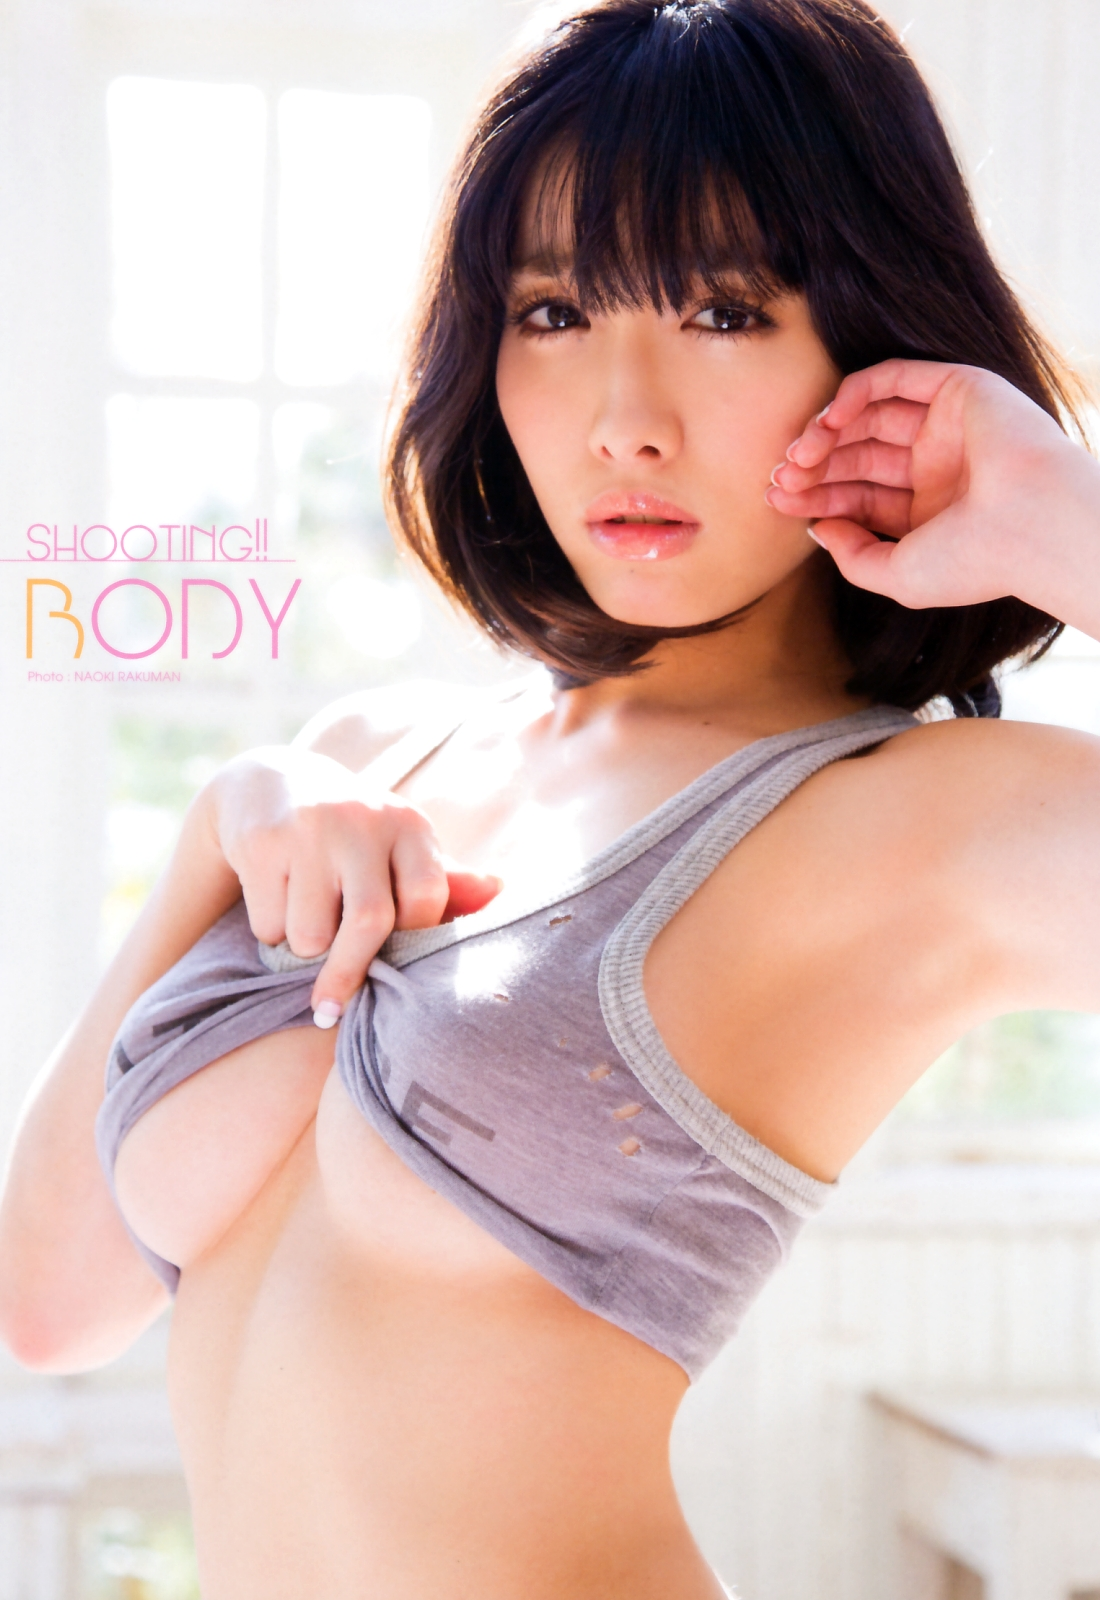 Its soft and makes you want to touch it Anna Konno 005